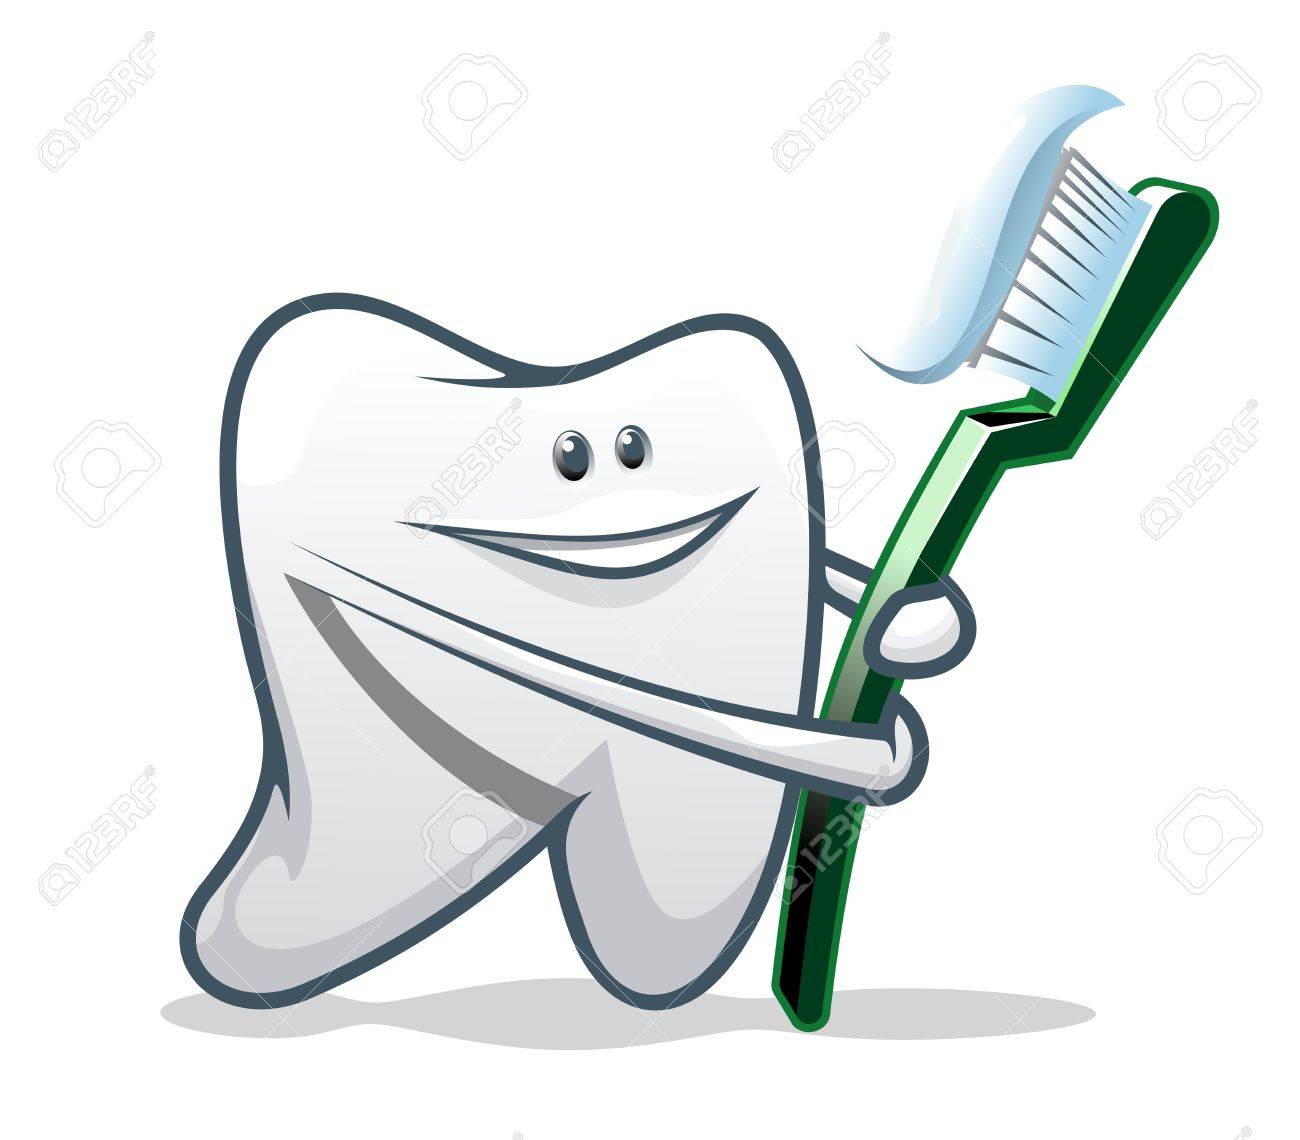 White smiling teeth as a health concept or symbol Stock Vector - 8910404